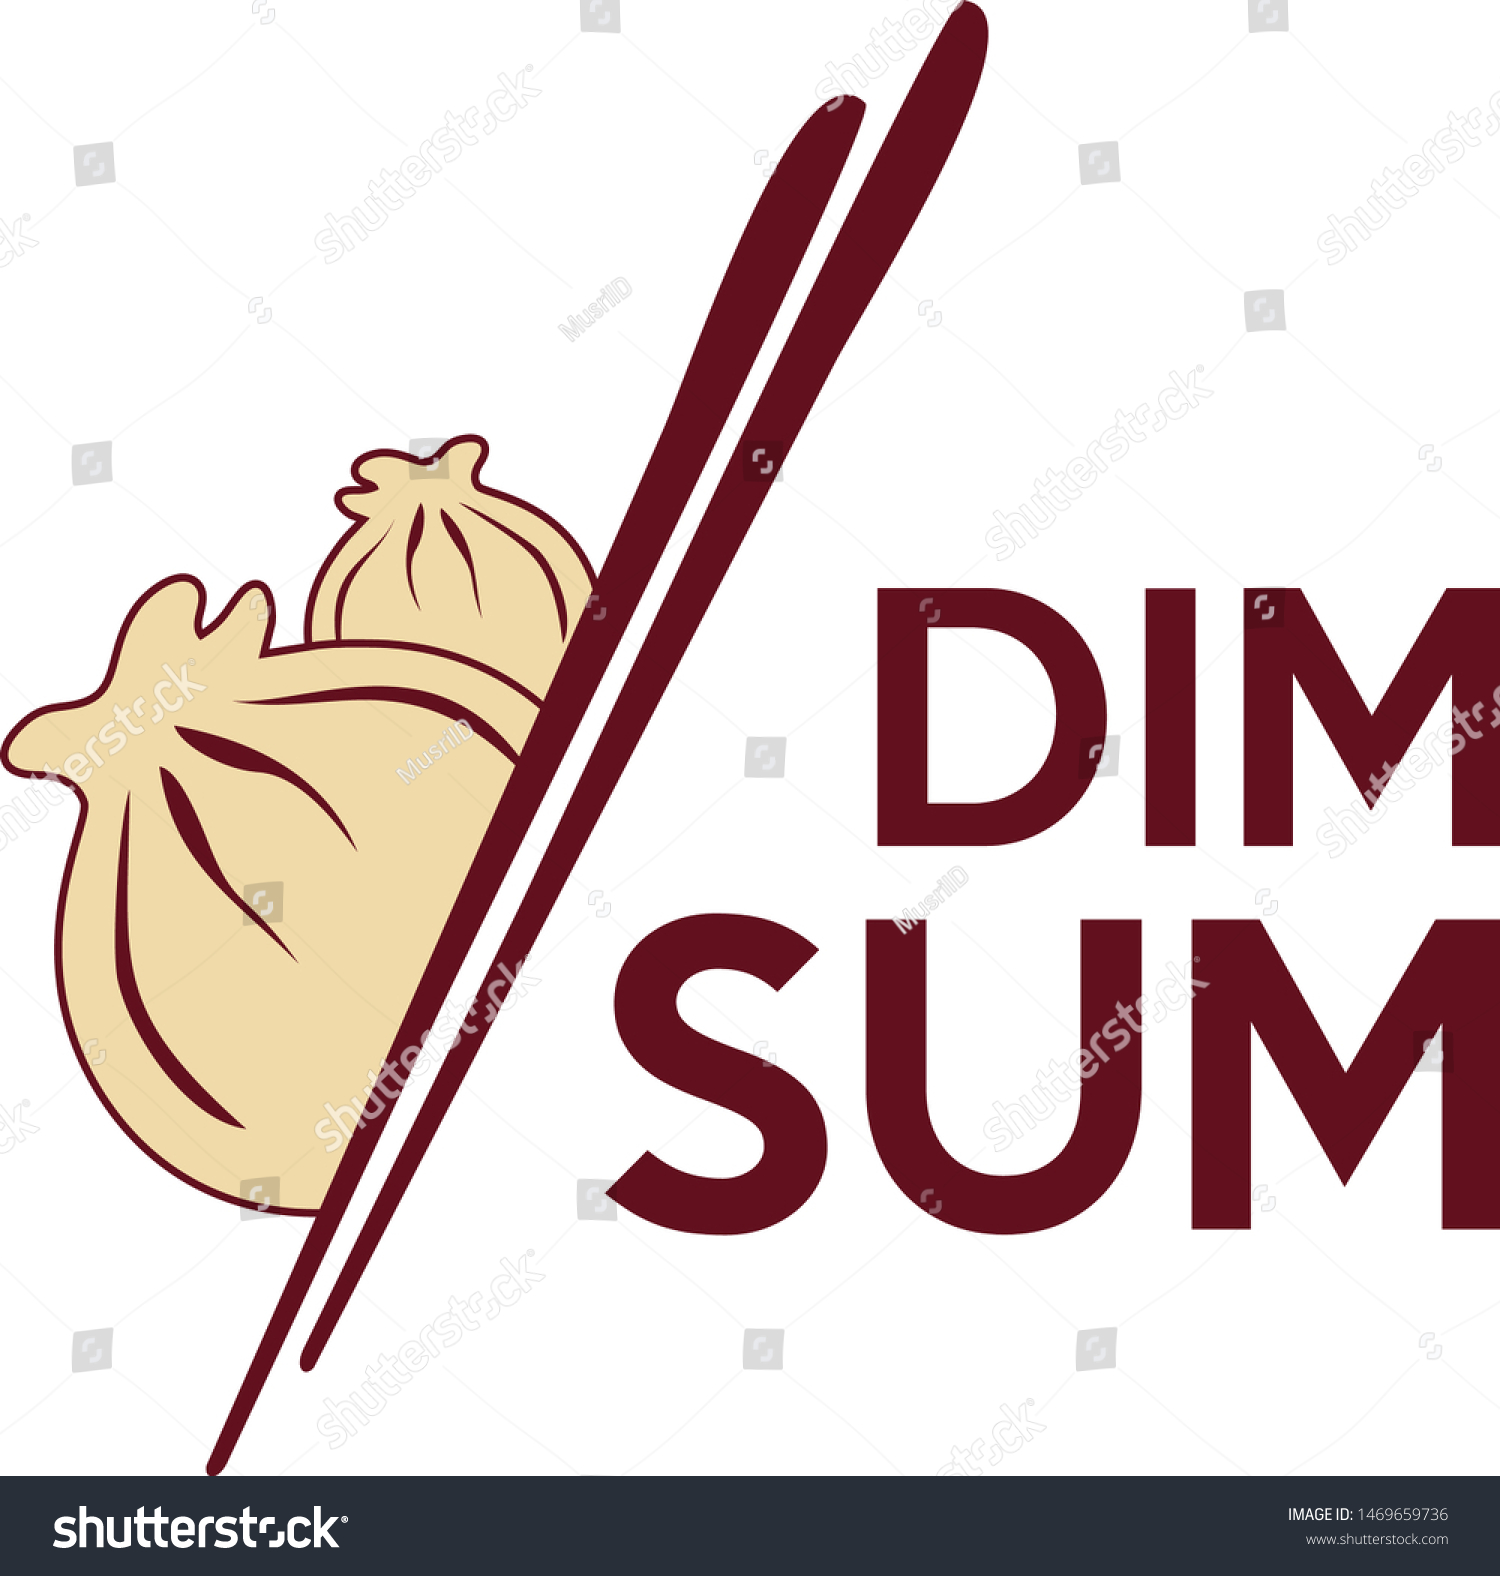 dimsum logo design your business stock vector royalty free 1469659736 https www shutterstock com image vector dimsum logo design your business 1469659736